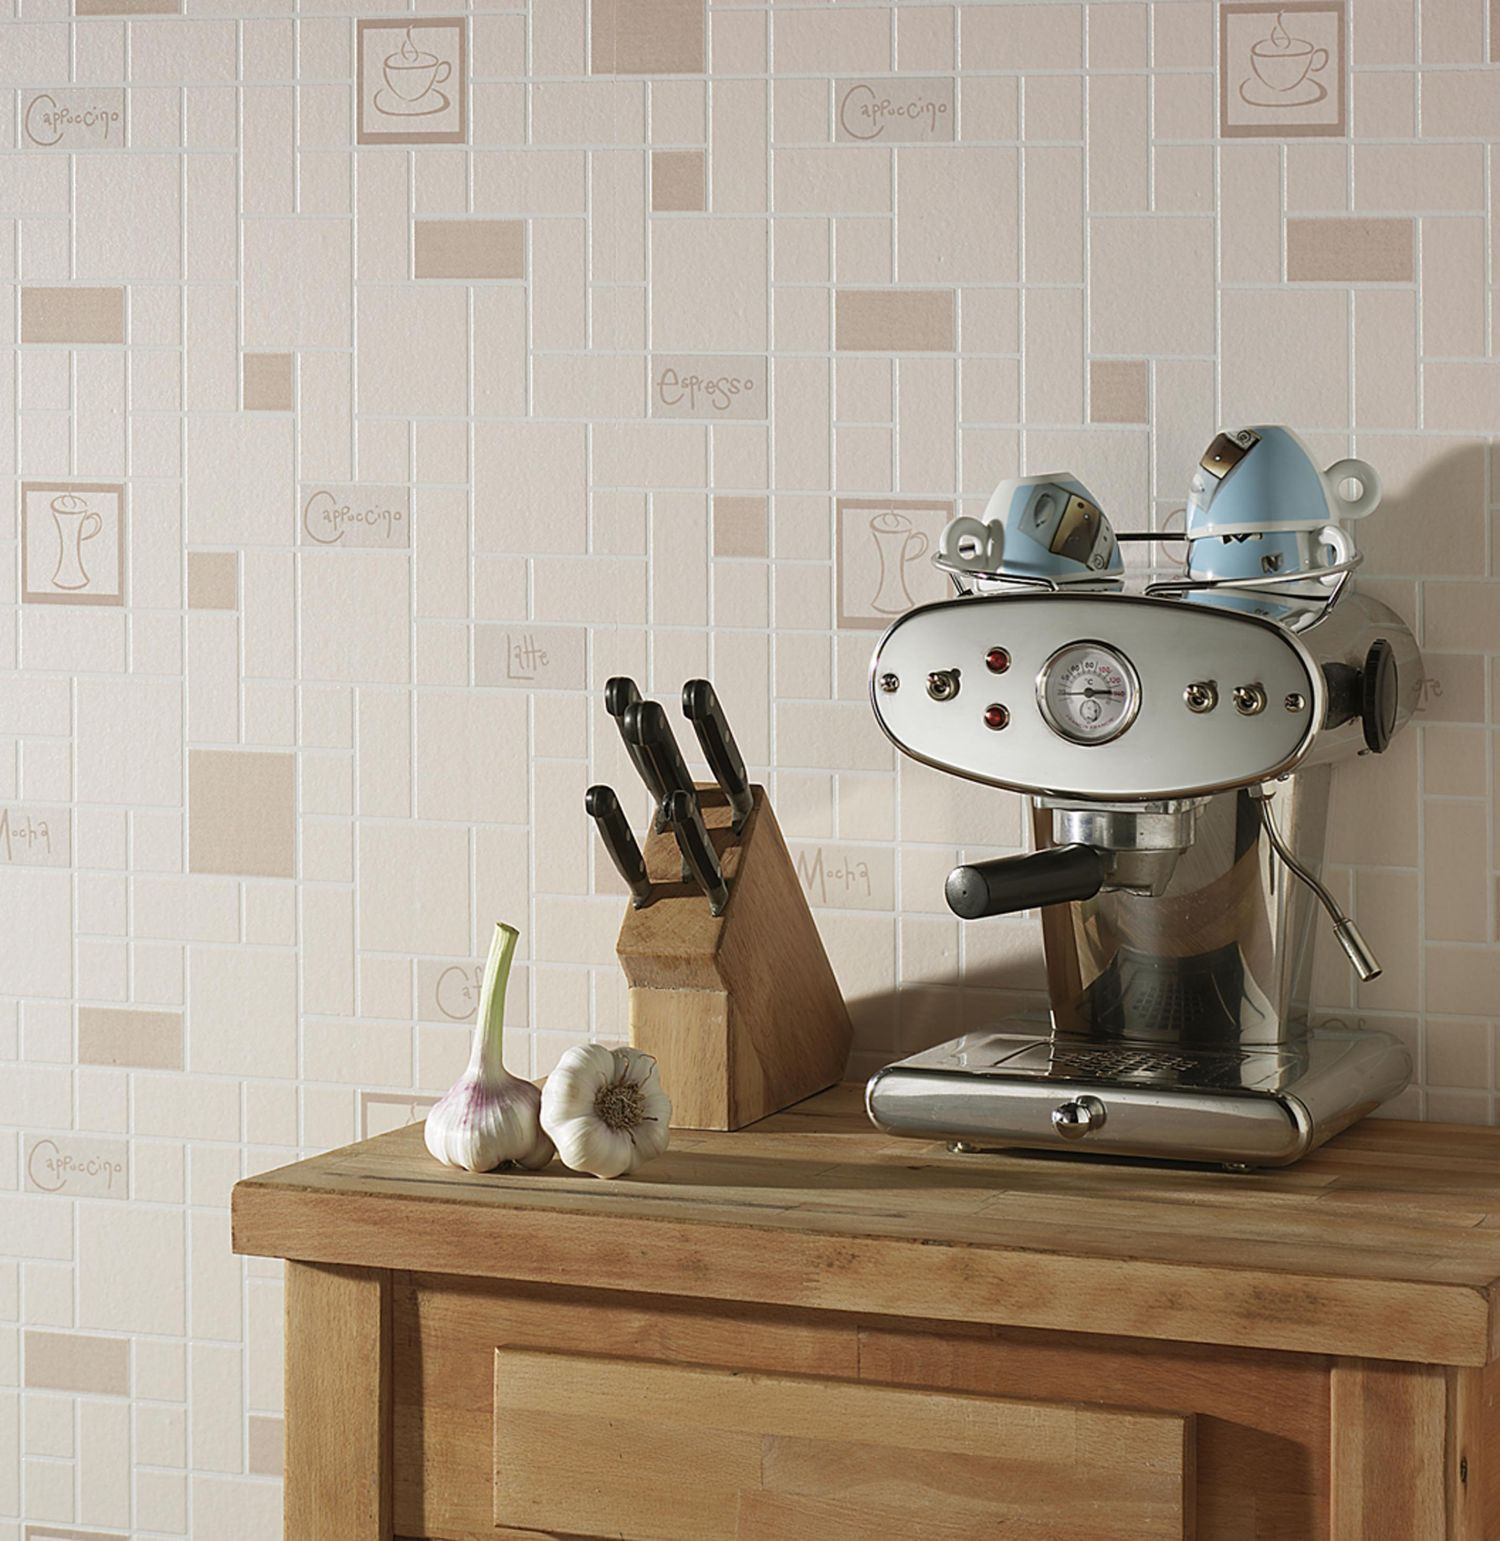 Beige cafe culture wallpaper